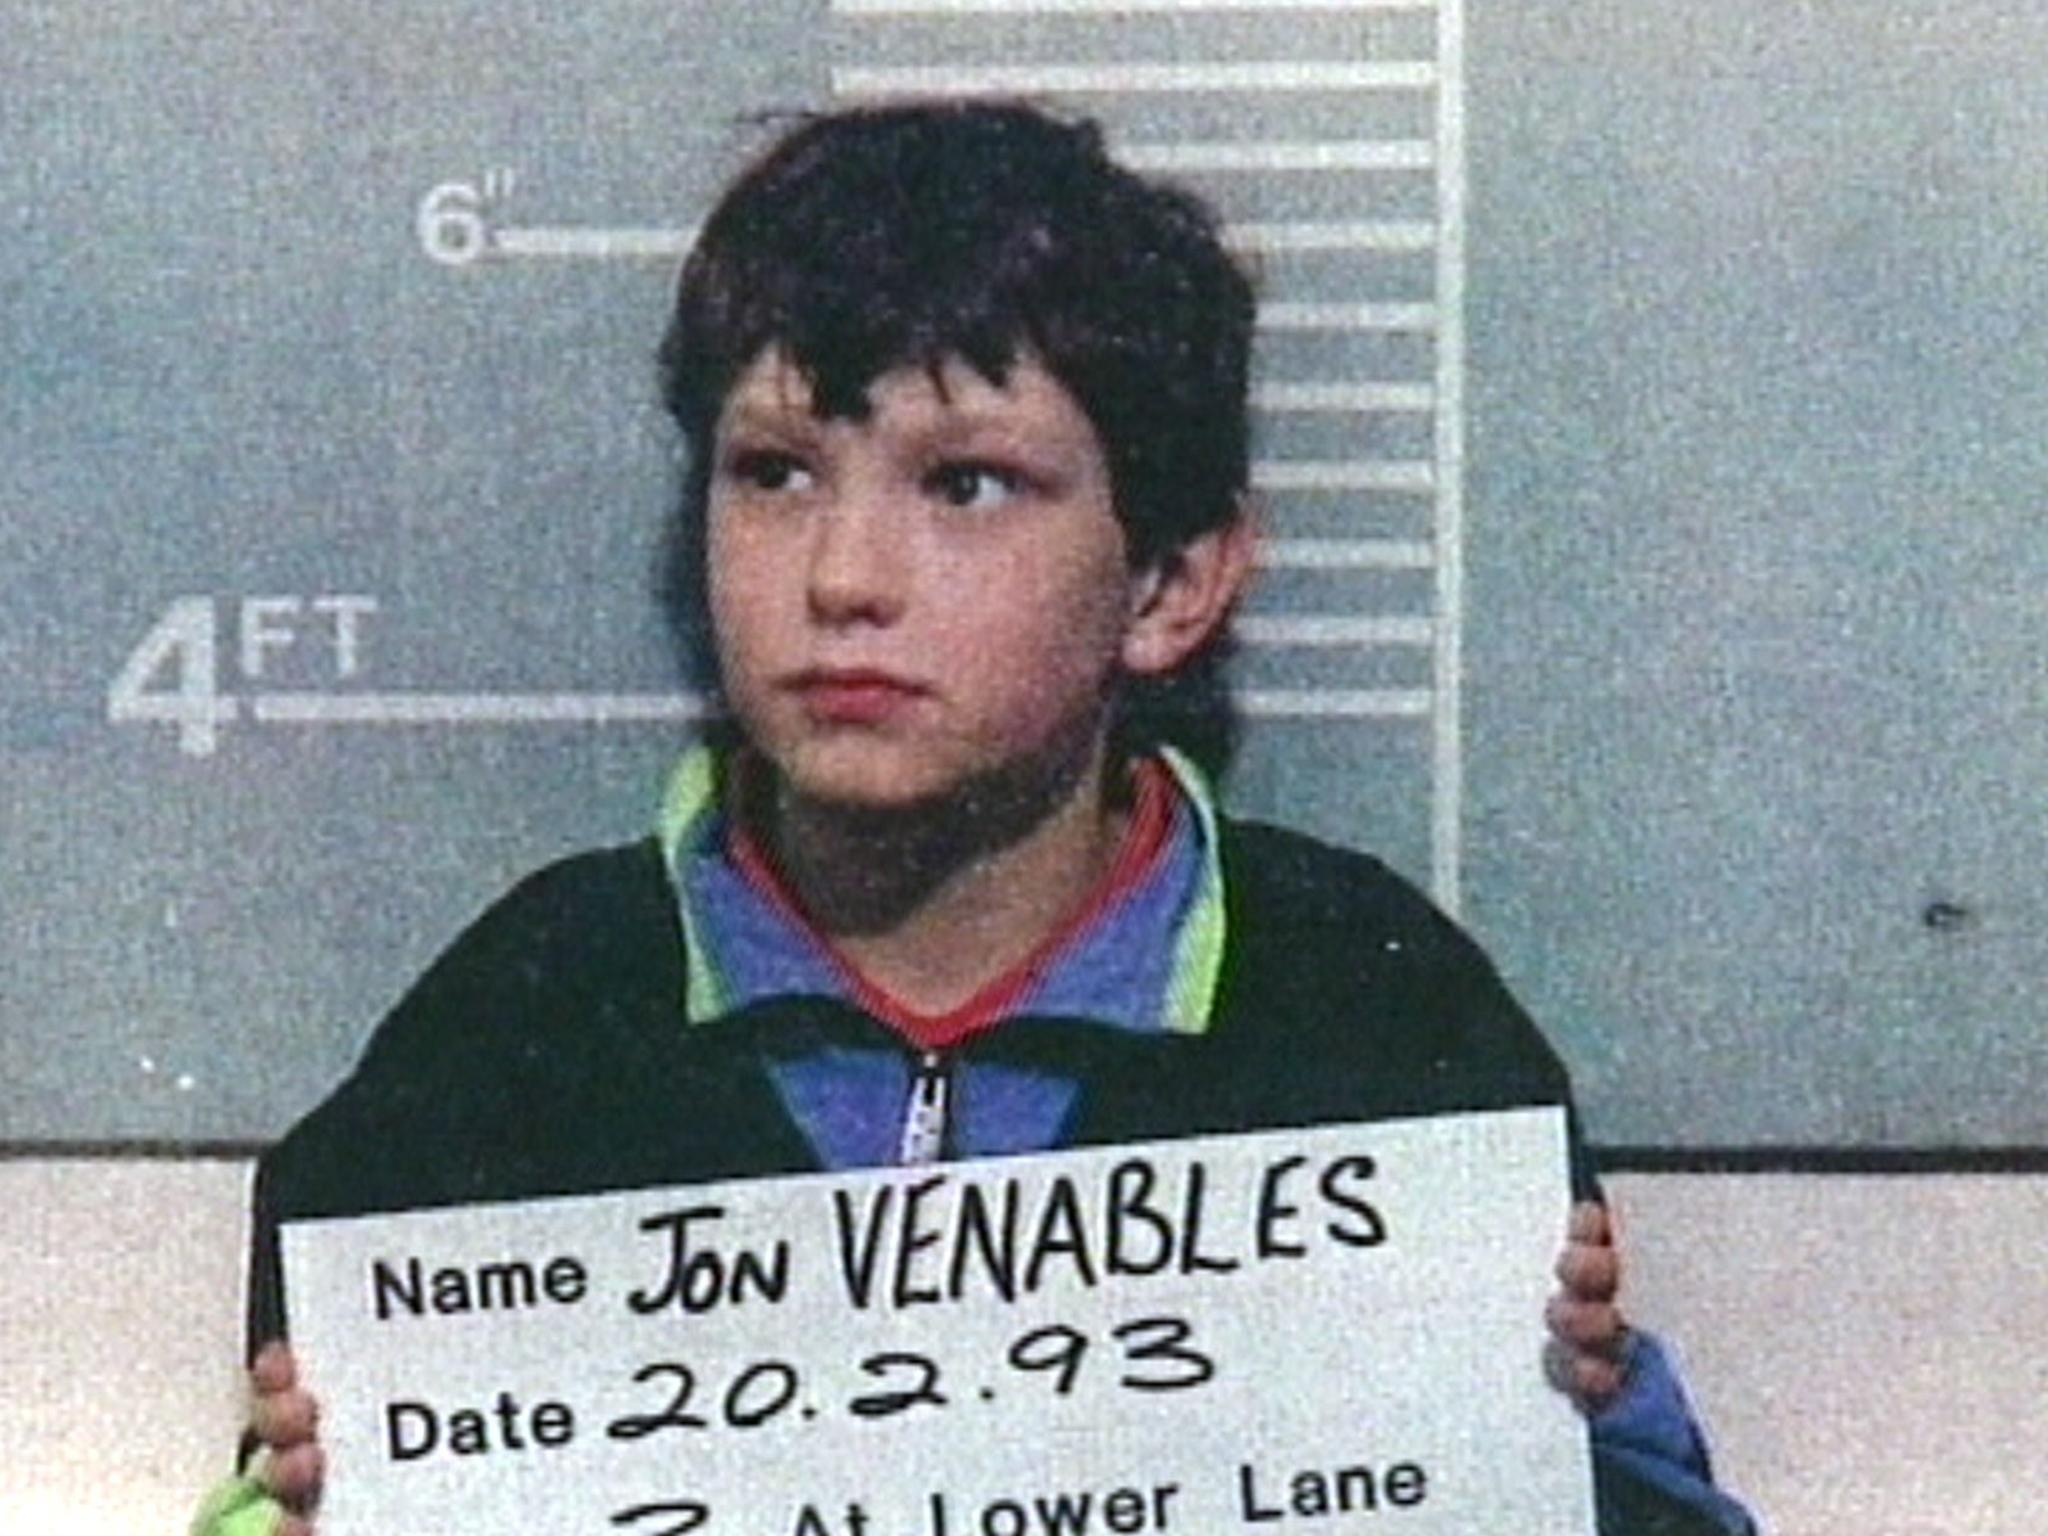 Jon Venables: James Bulger killer \'back in prison after being caught ...